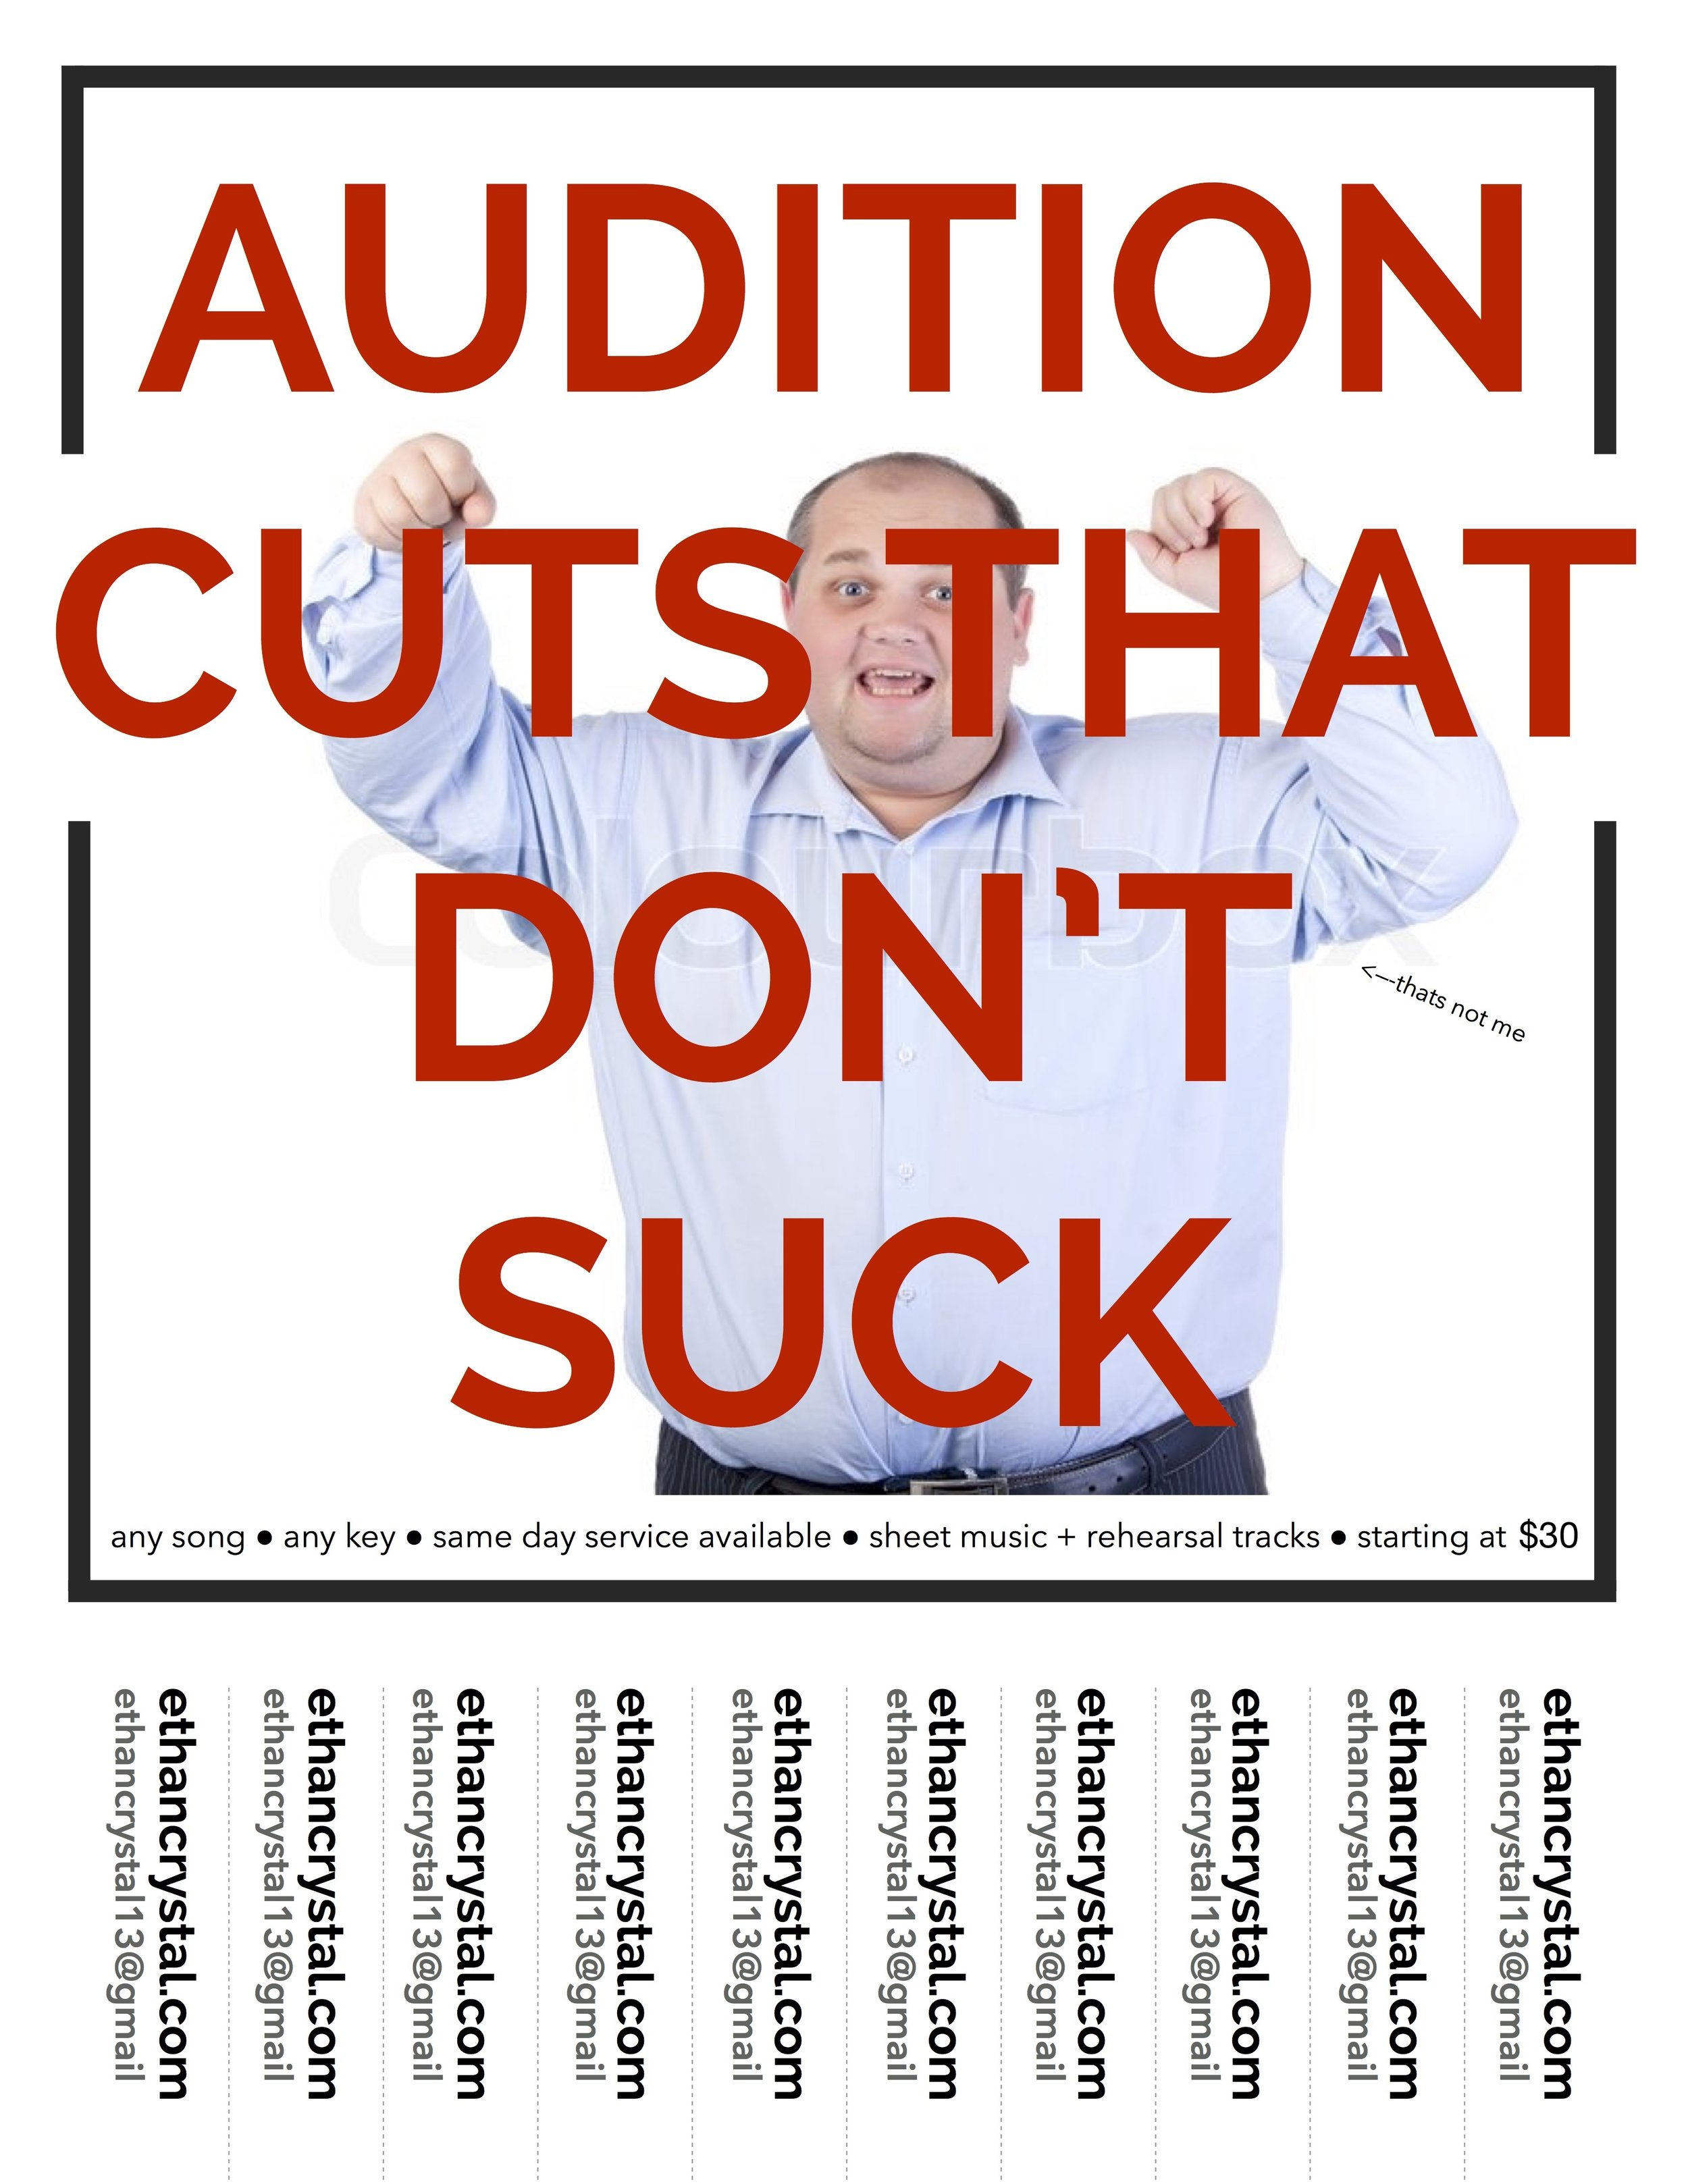 auditioncutsthatdontsuck(fullflyer).jpg